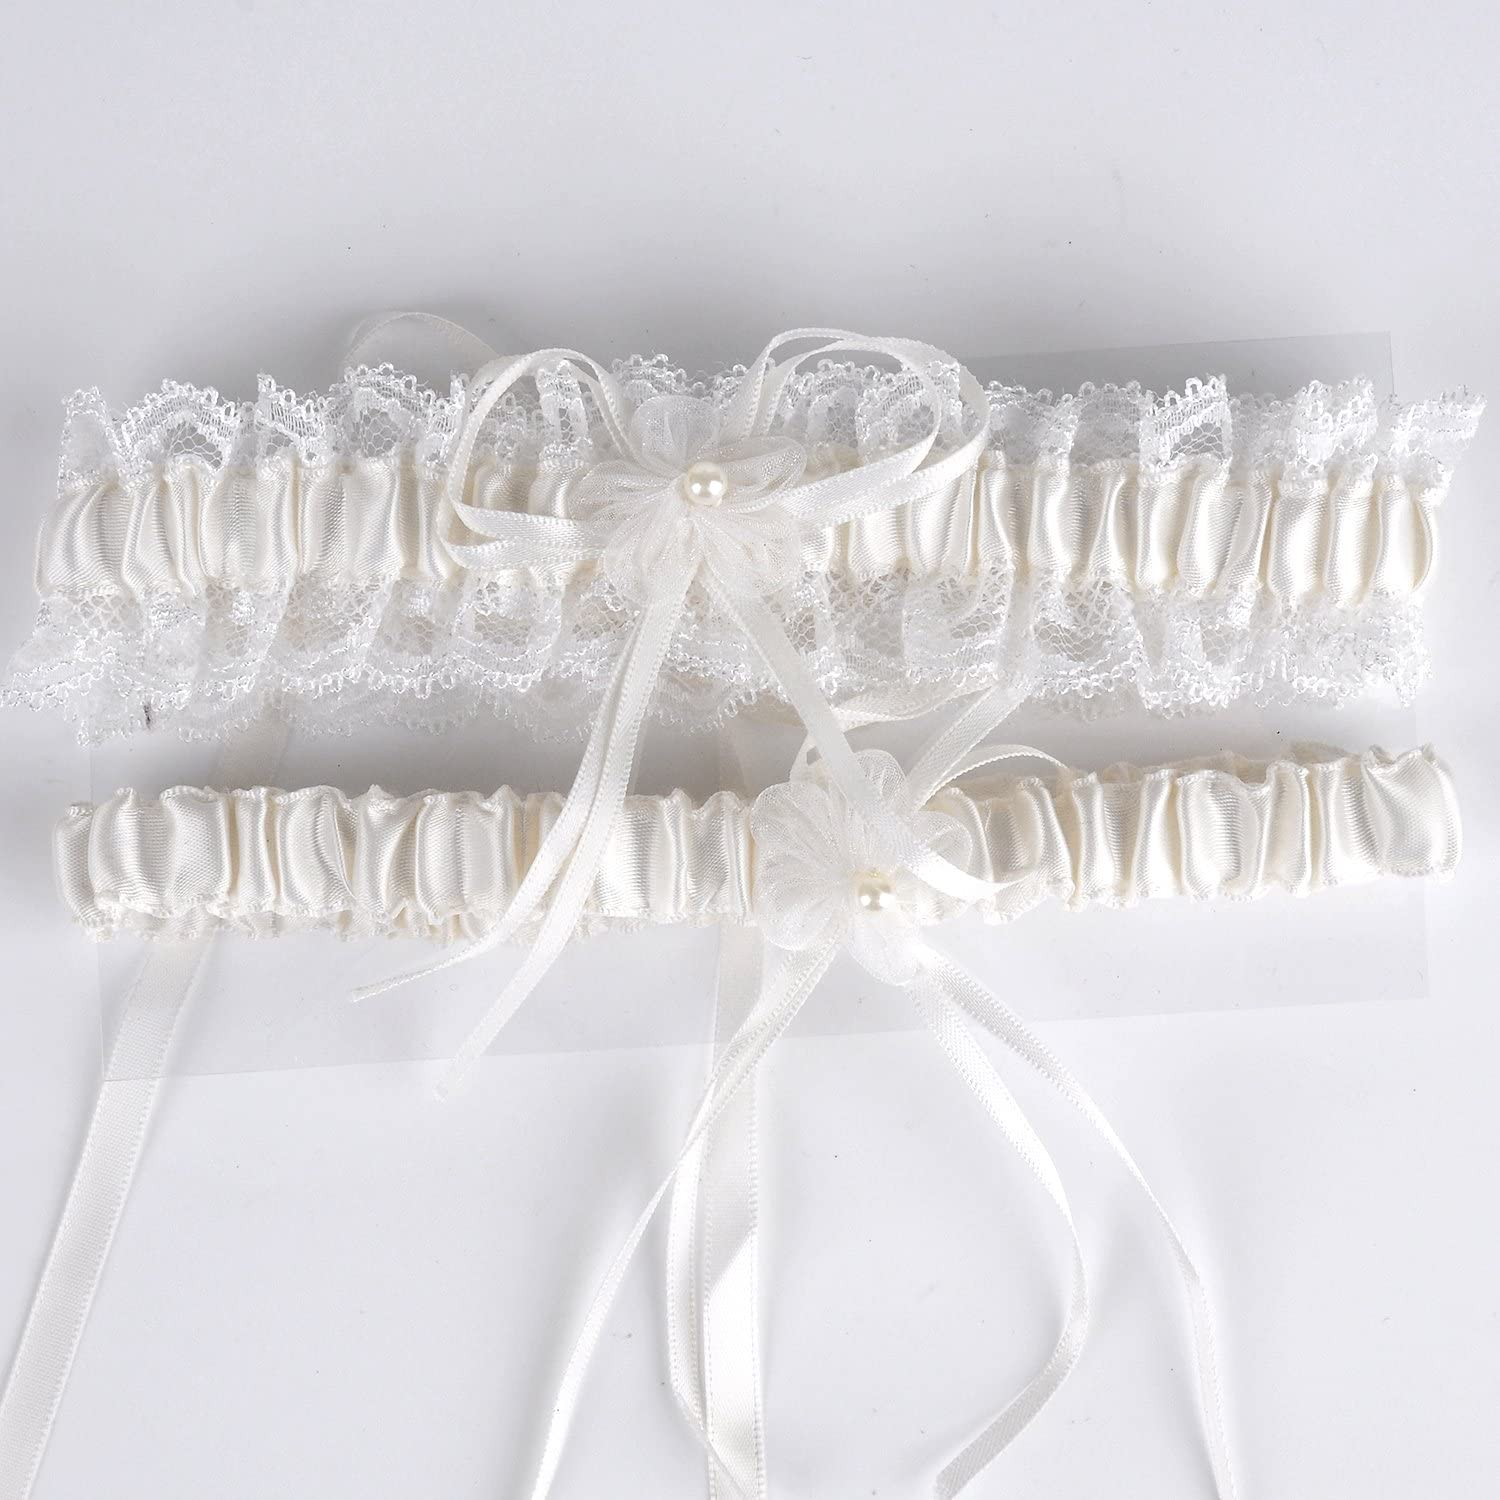 CINDERELLA SLIPPER Sheer Satin Bridal Wedding Garter